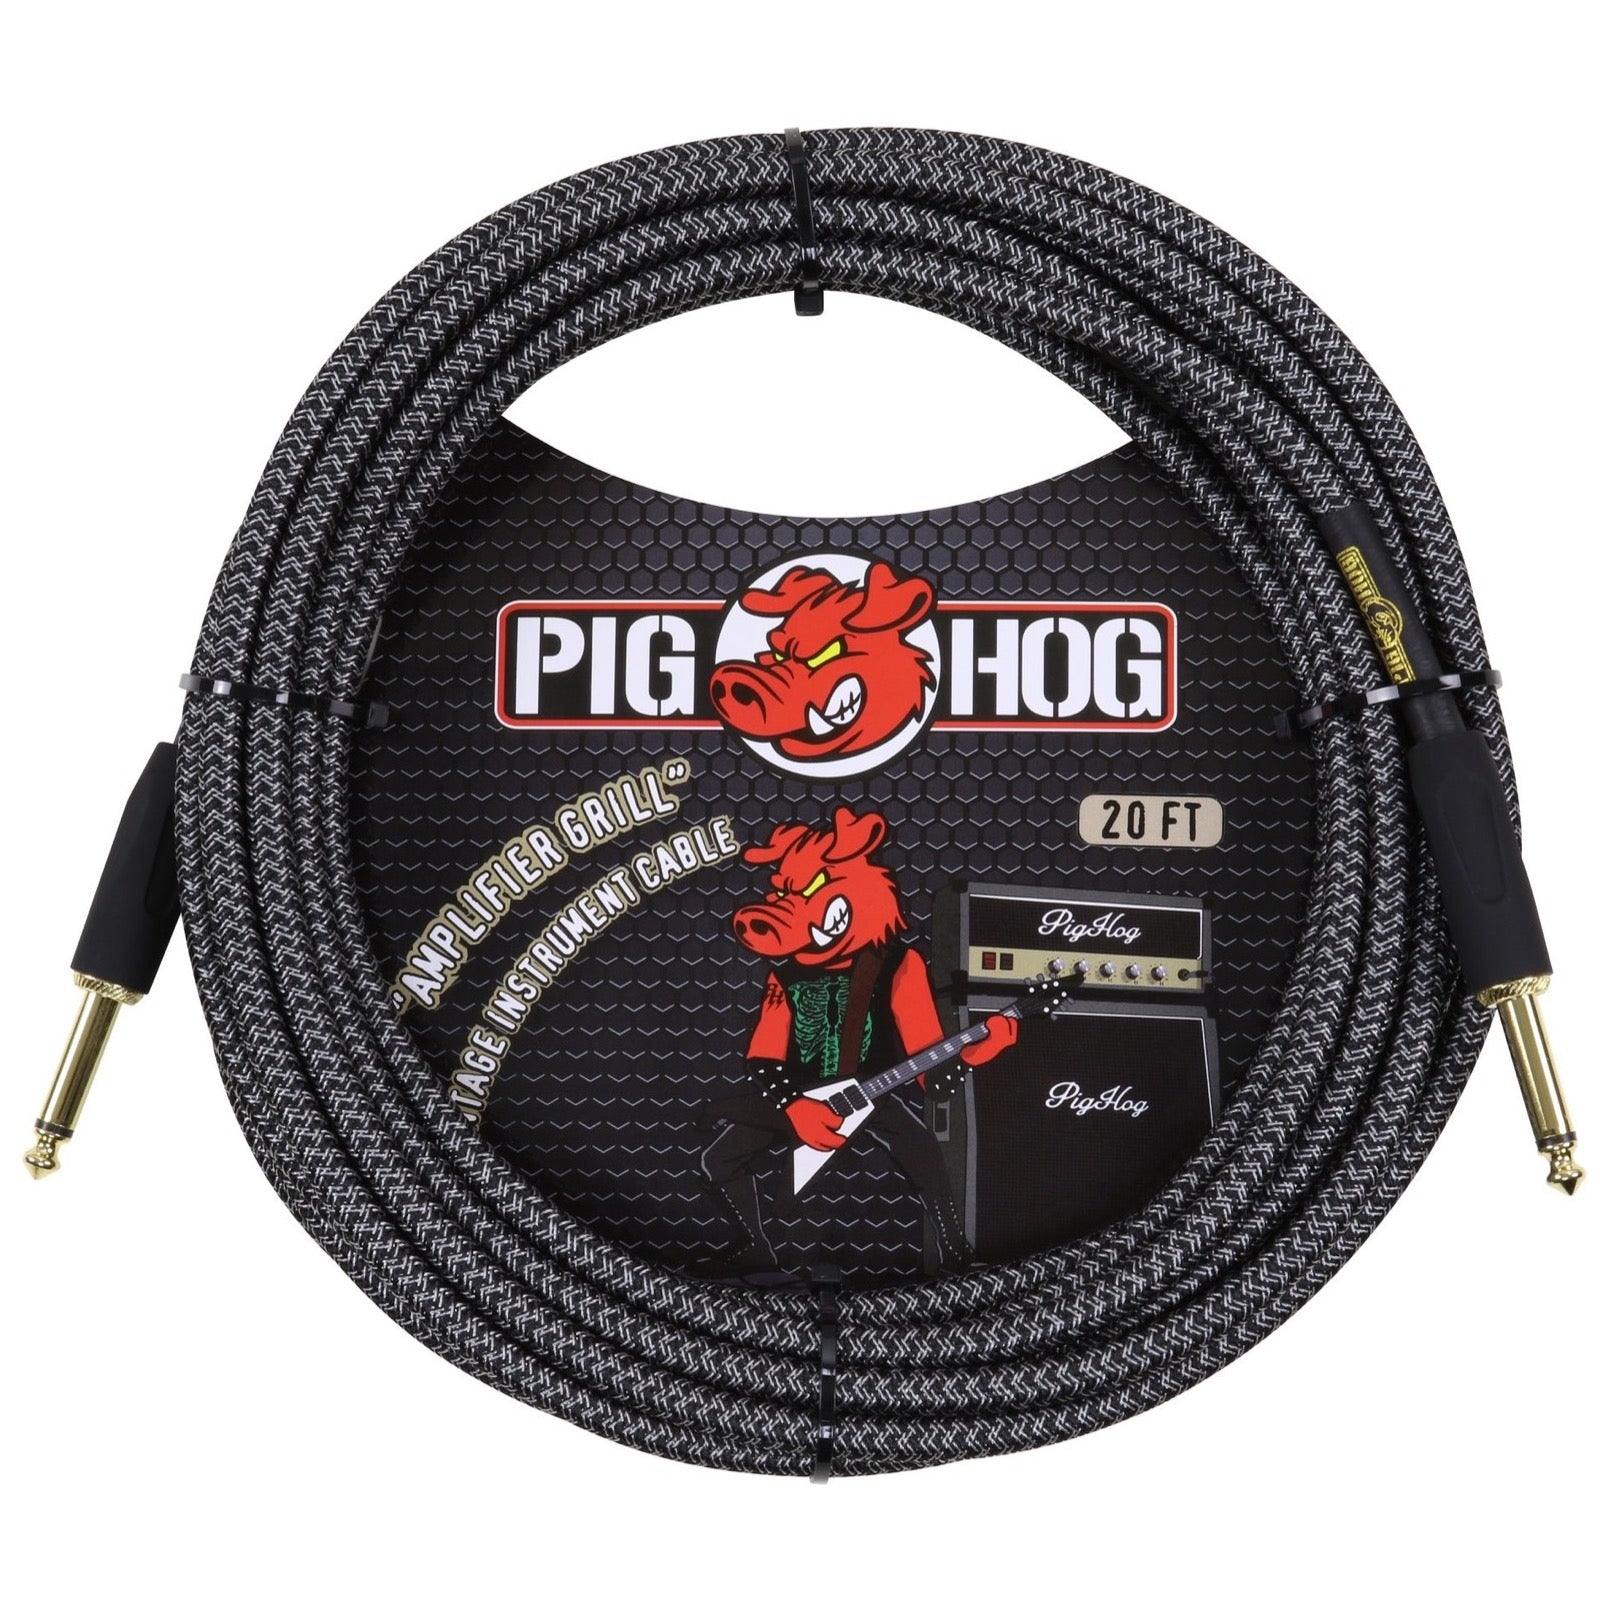 Pig Hog Vintage Series Instrument Cable, 1/4 Inch Straight to 1/4 Inch Straight, Amp Grill, 20'